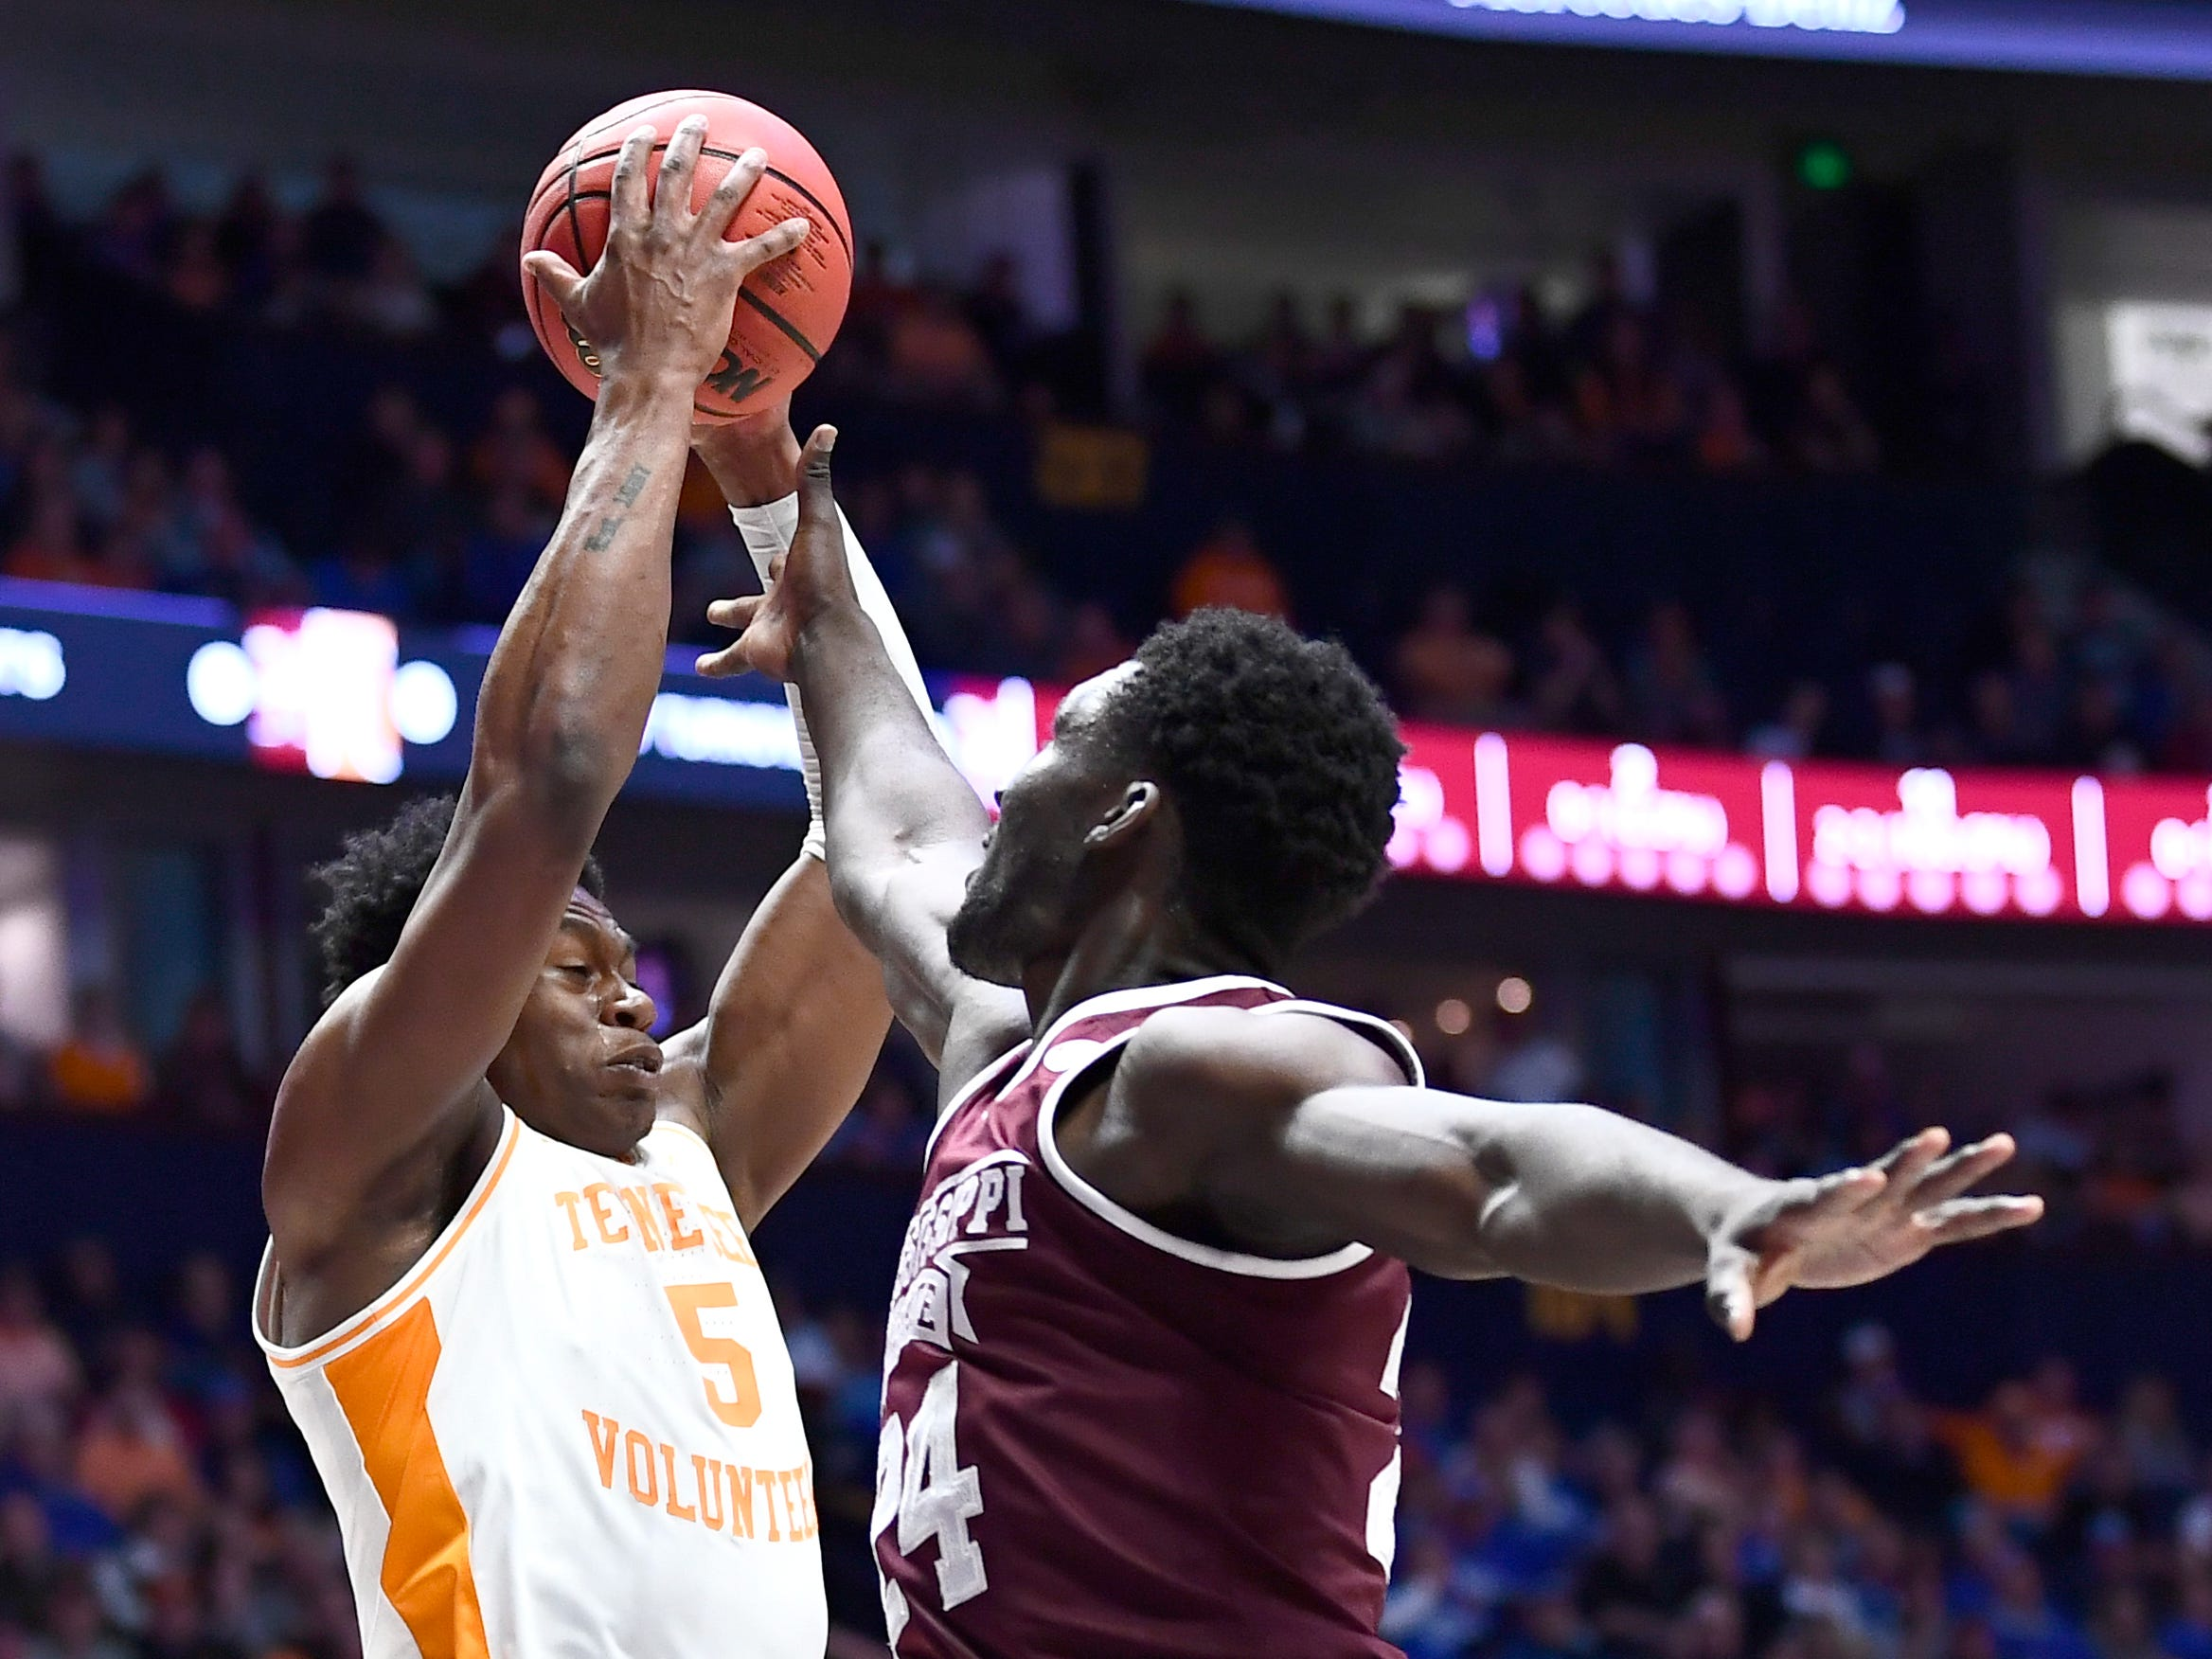 Tennessee guard Admiral Schofield (5) grabs a rebound in front of Mississippi State forward Abdul Ado (24) during the first half of the SEC Men's Basketball Tournament game at Bridgestone Arena in Nashville, Tenn., Friday, March 15, 2019.